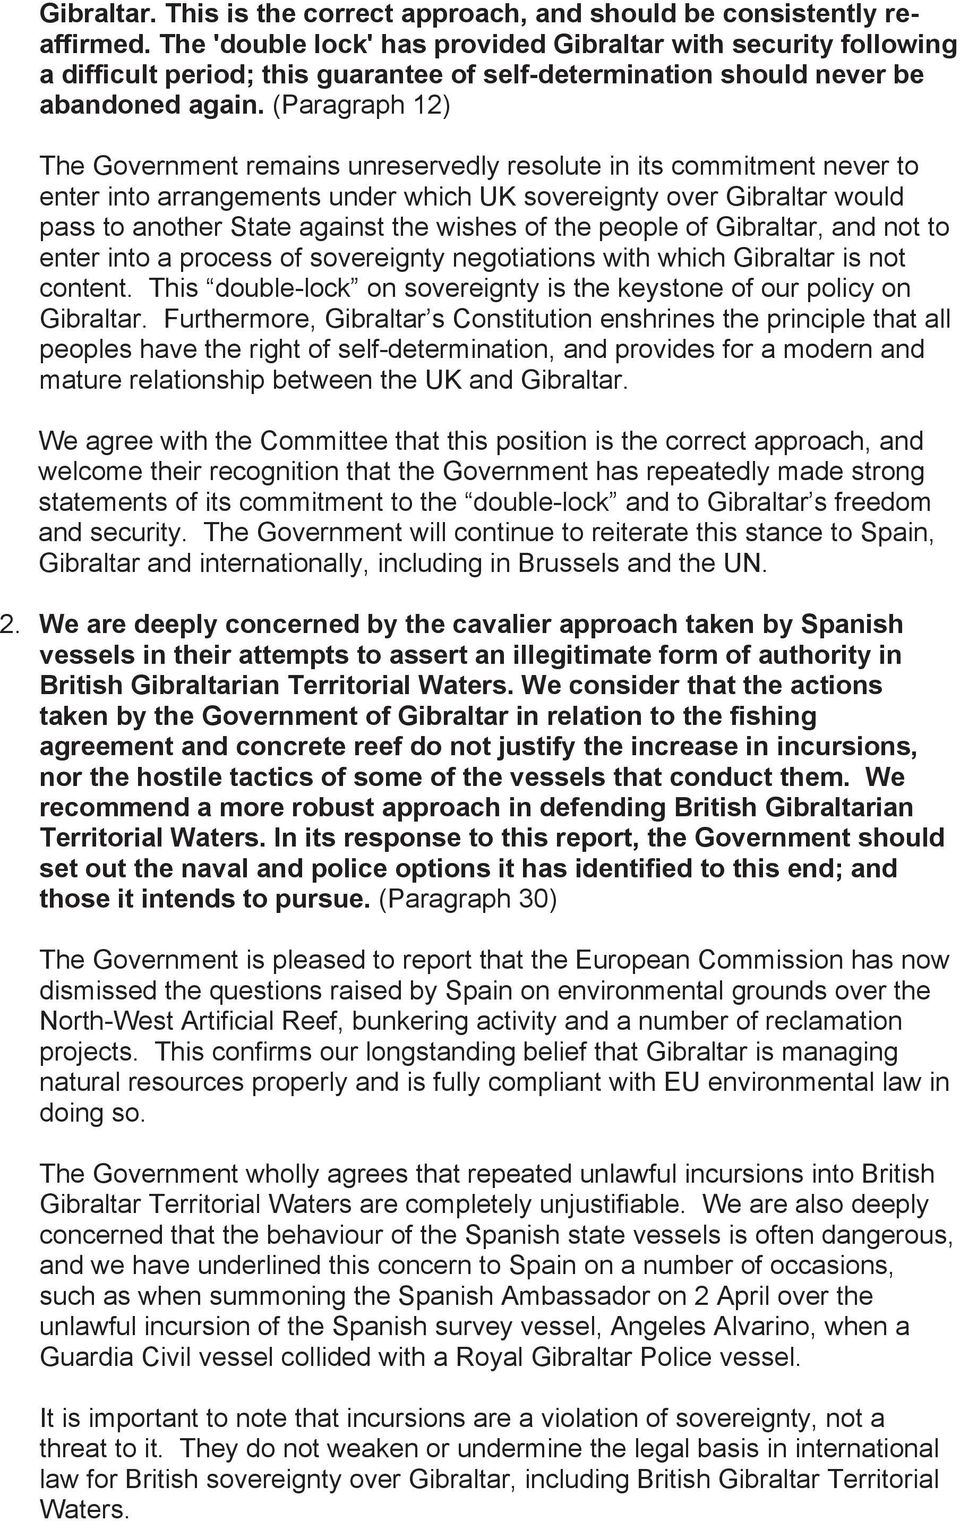 (Paragraph 12) The Government remains unreservedly resolute in its commitment never to enter into arrangements under which UK sovereignty over Gibraltar would pass to another State against the wishes